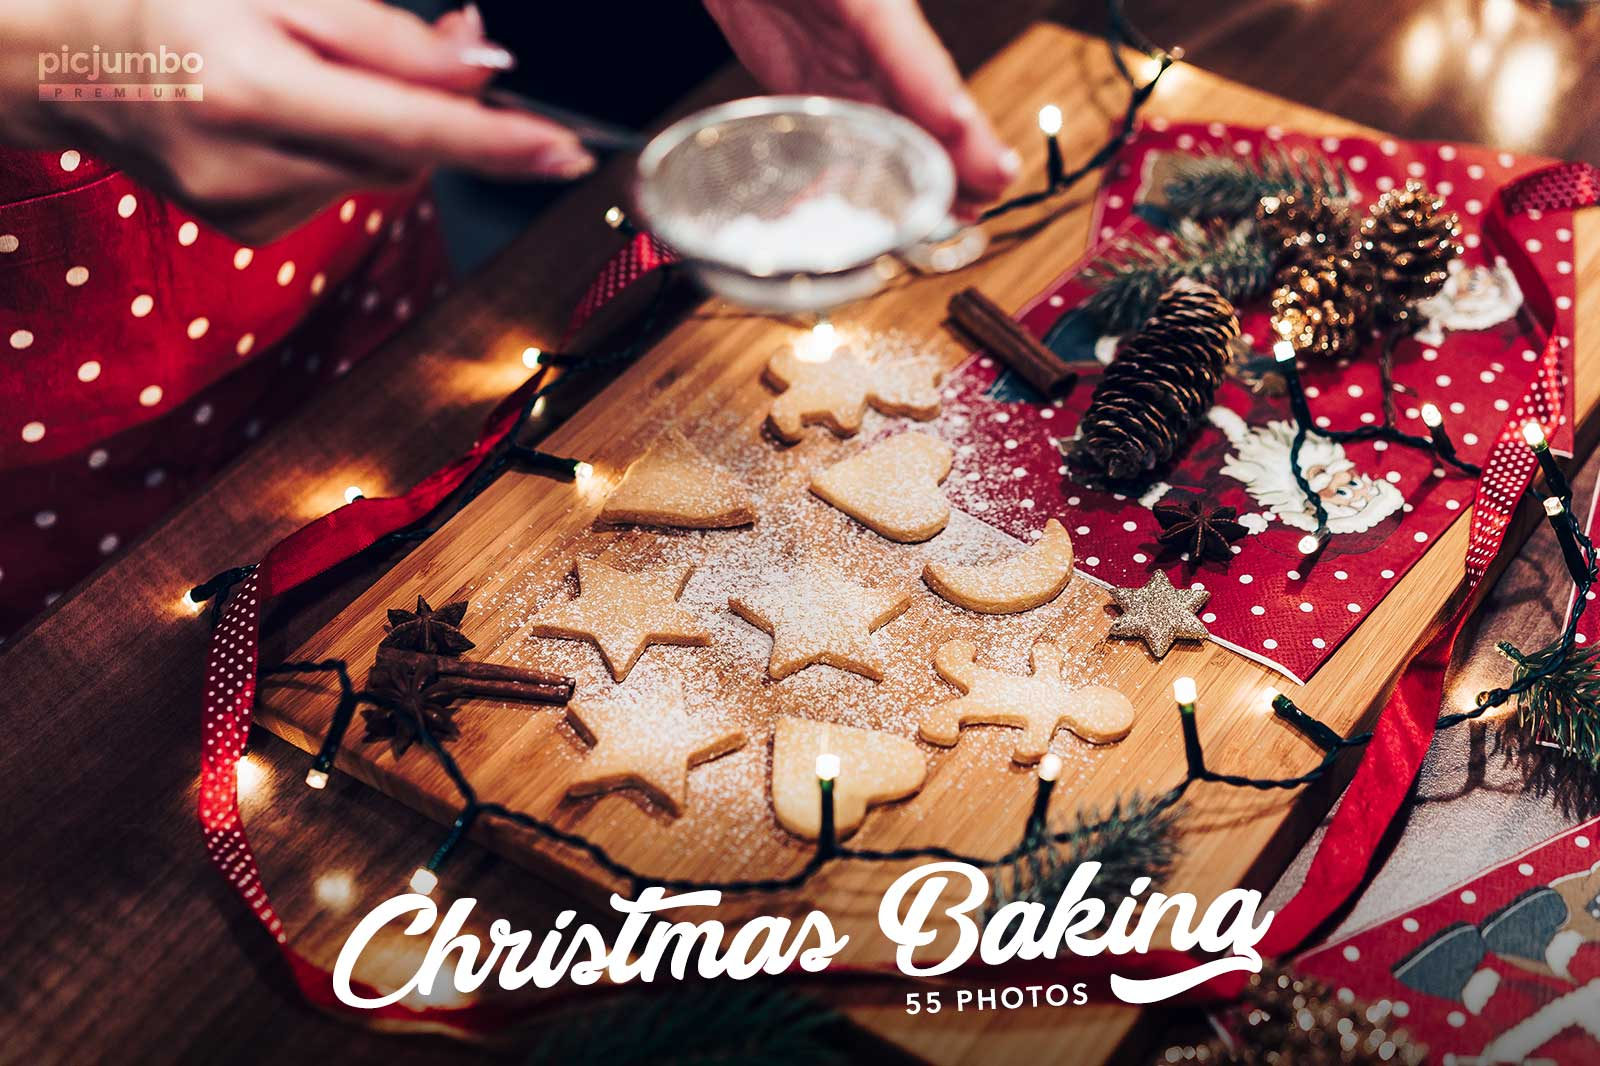 Christmas Baking — Join PREMIUM and get instant access to all photos from this collection!